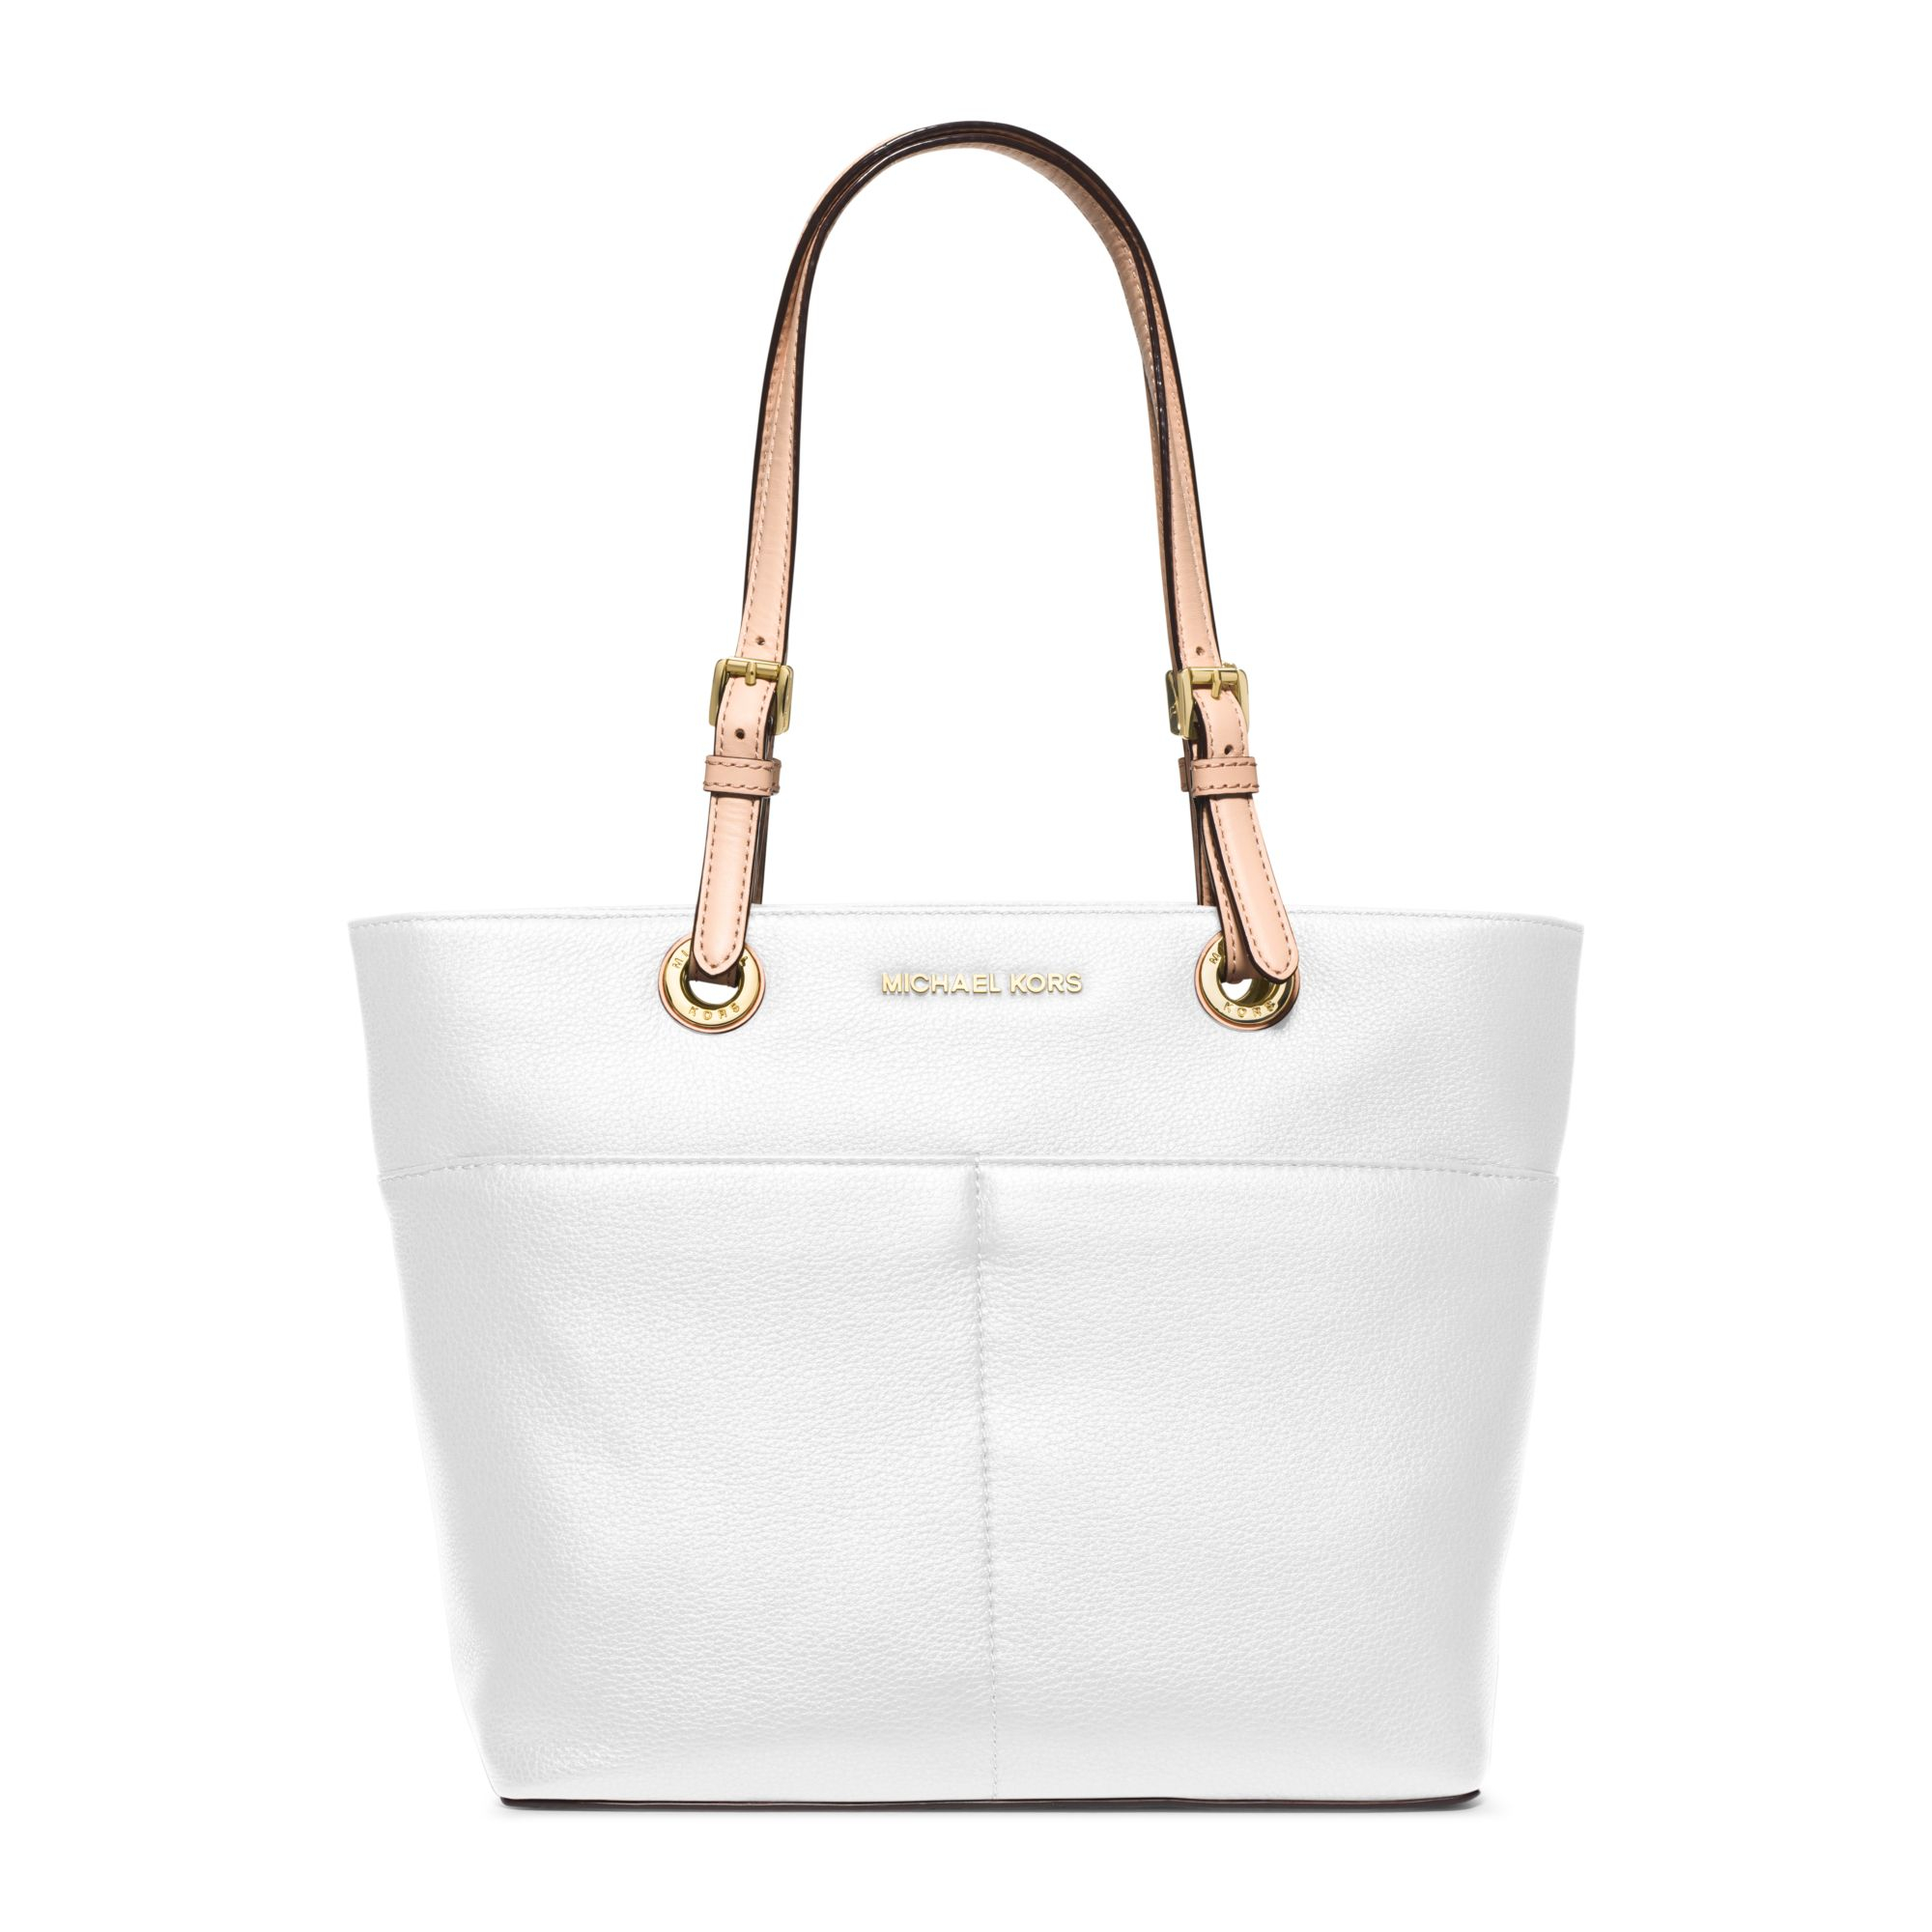 b697fe1f2 Lyst - Michael Kors Bedford Leather Tote in White